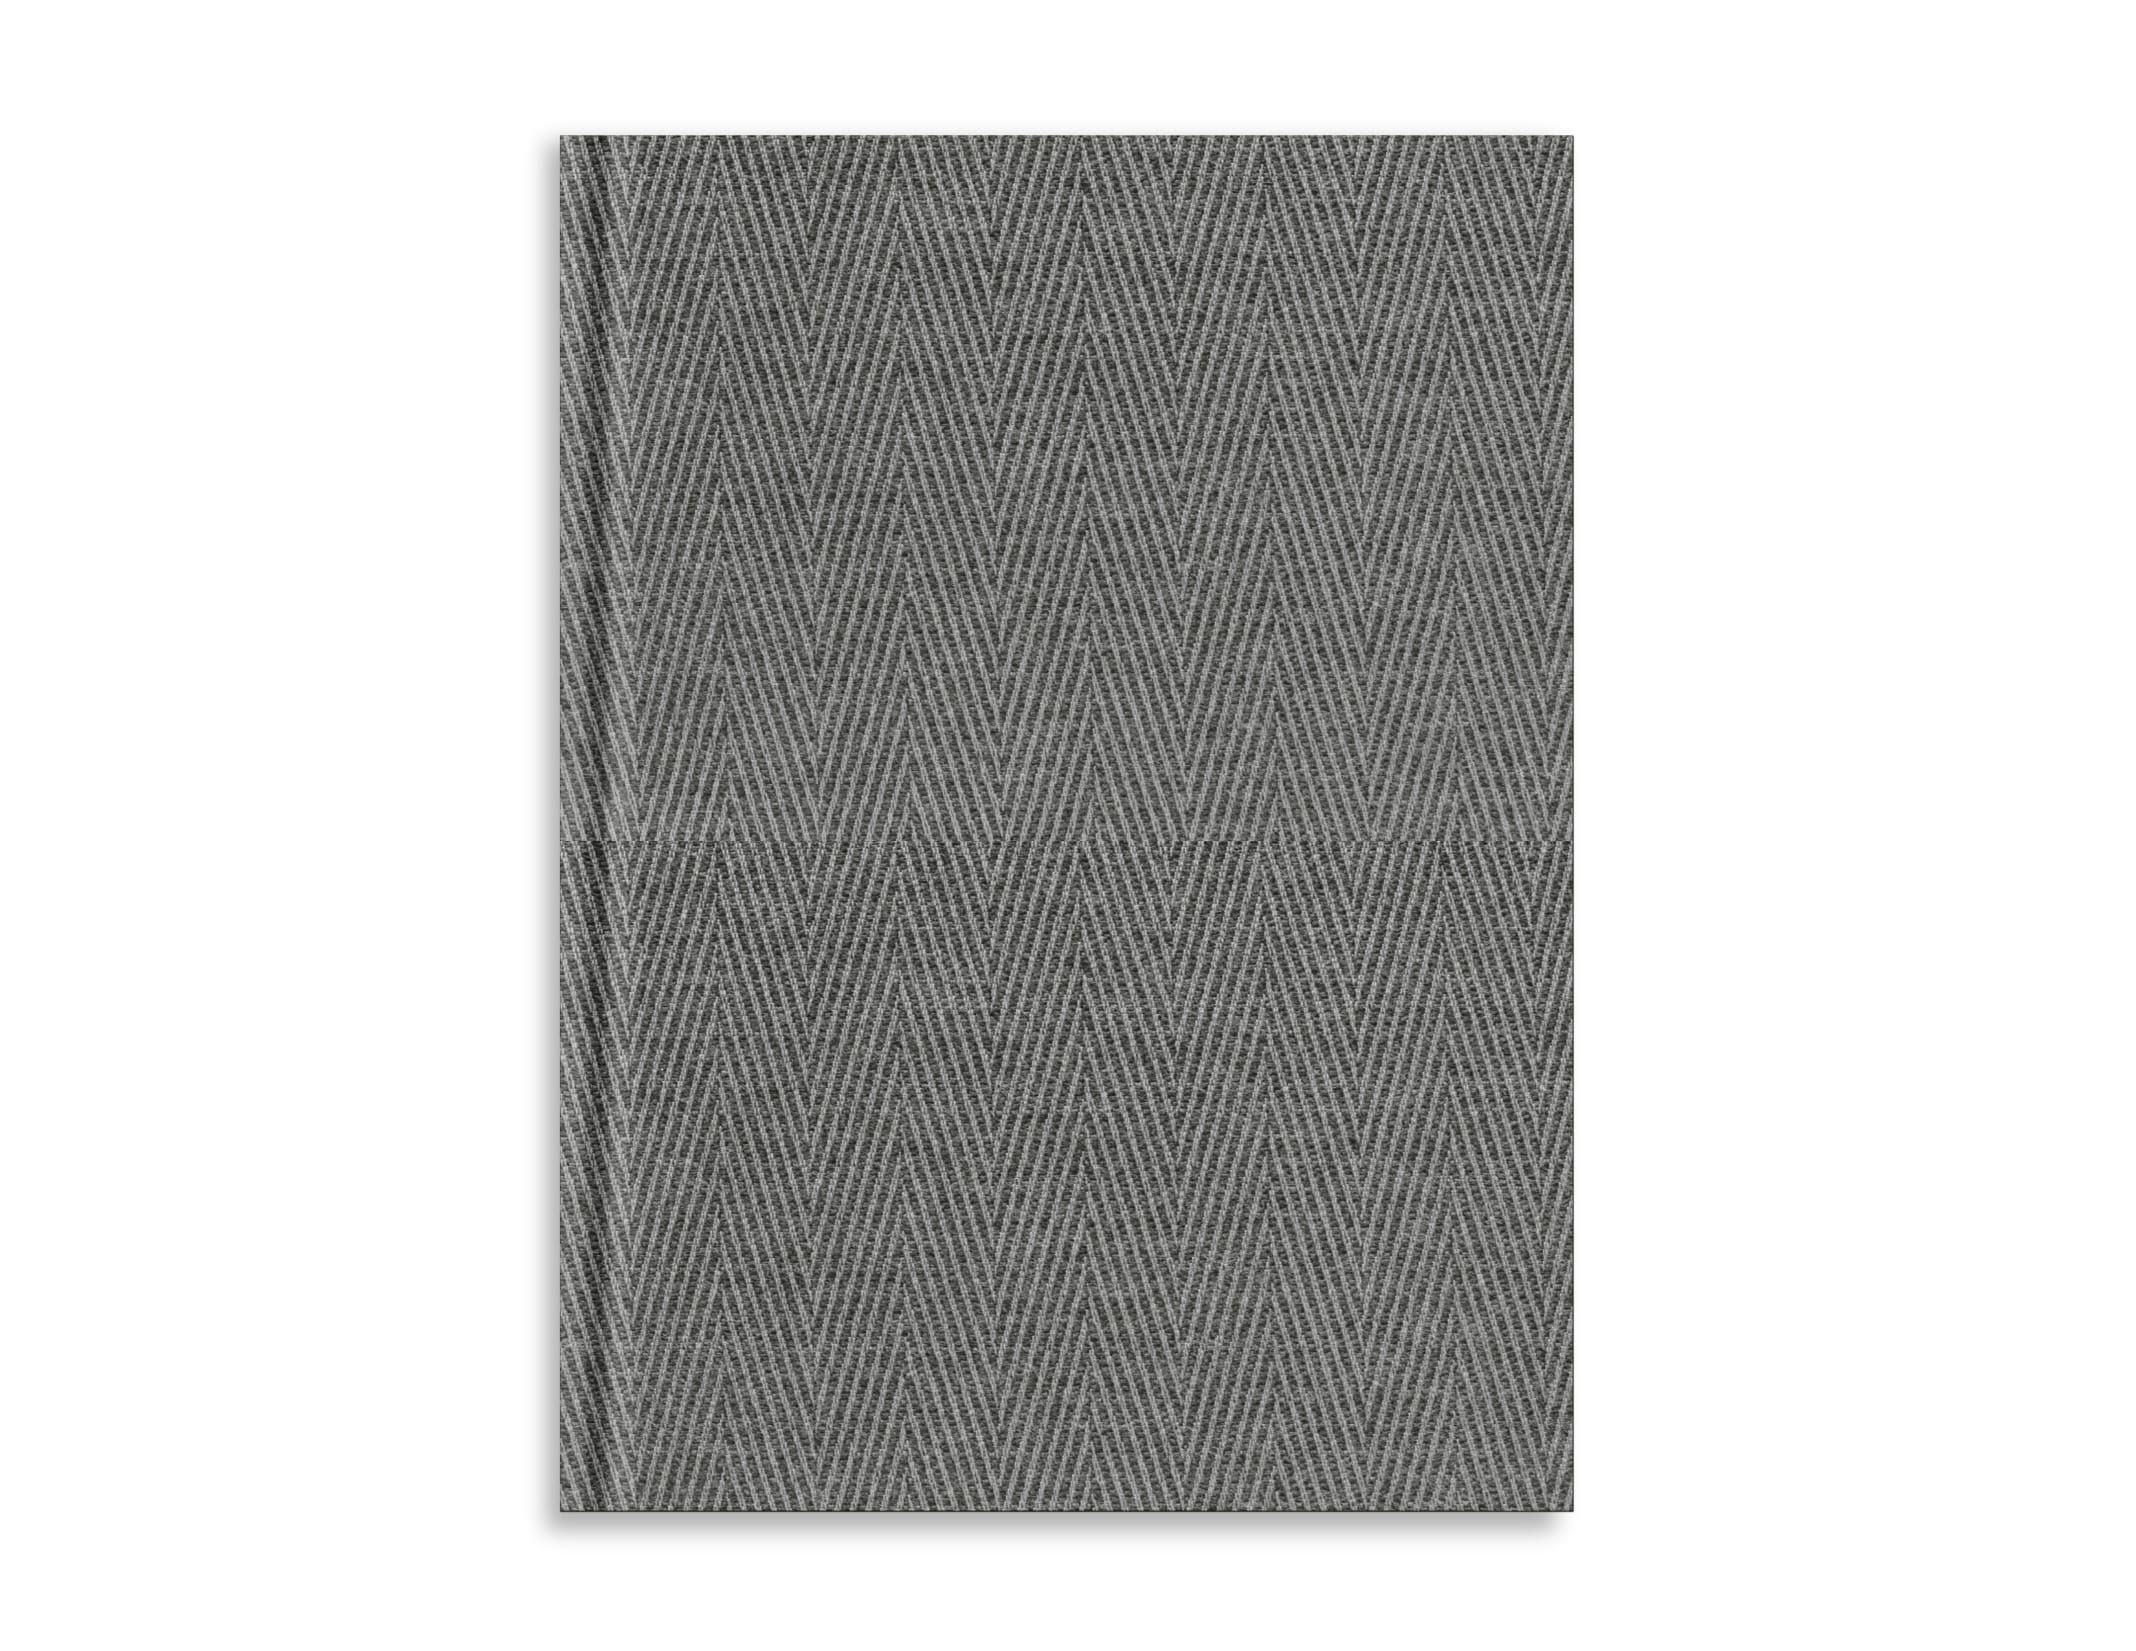 Belvedere Chevron Grey Notebook 7X9.5 Inch